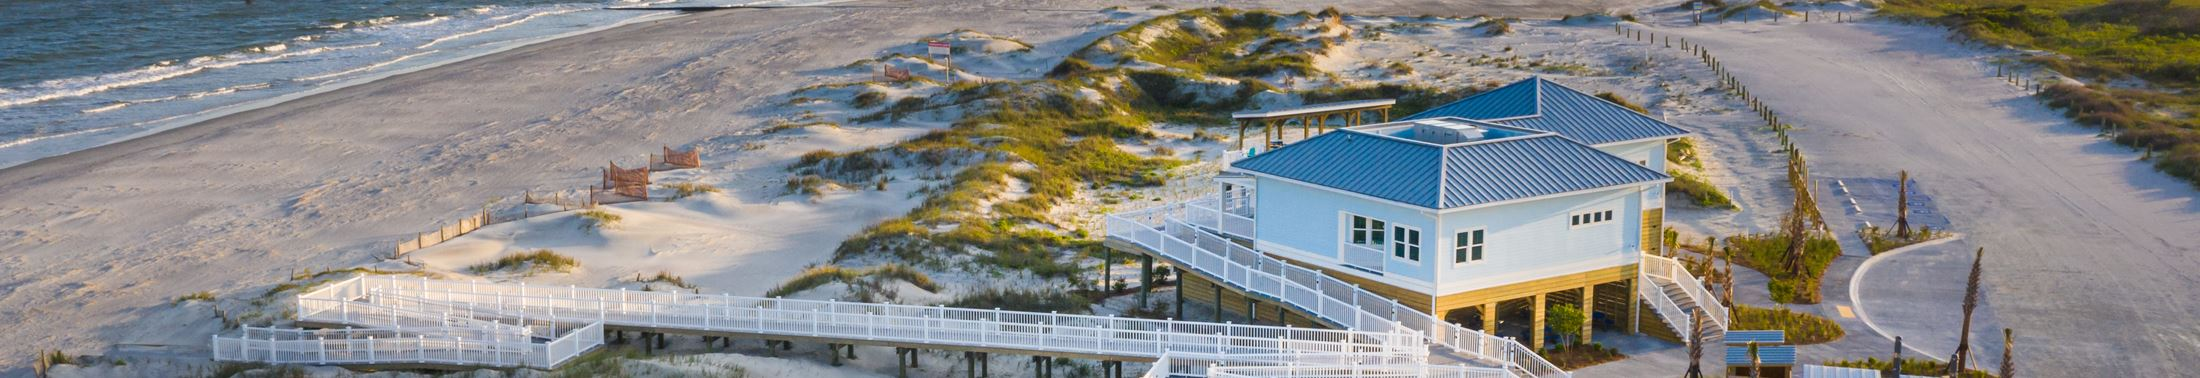 The Dunes House at the Folly Beach County Park